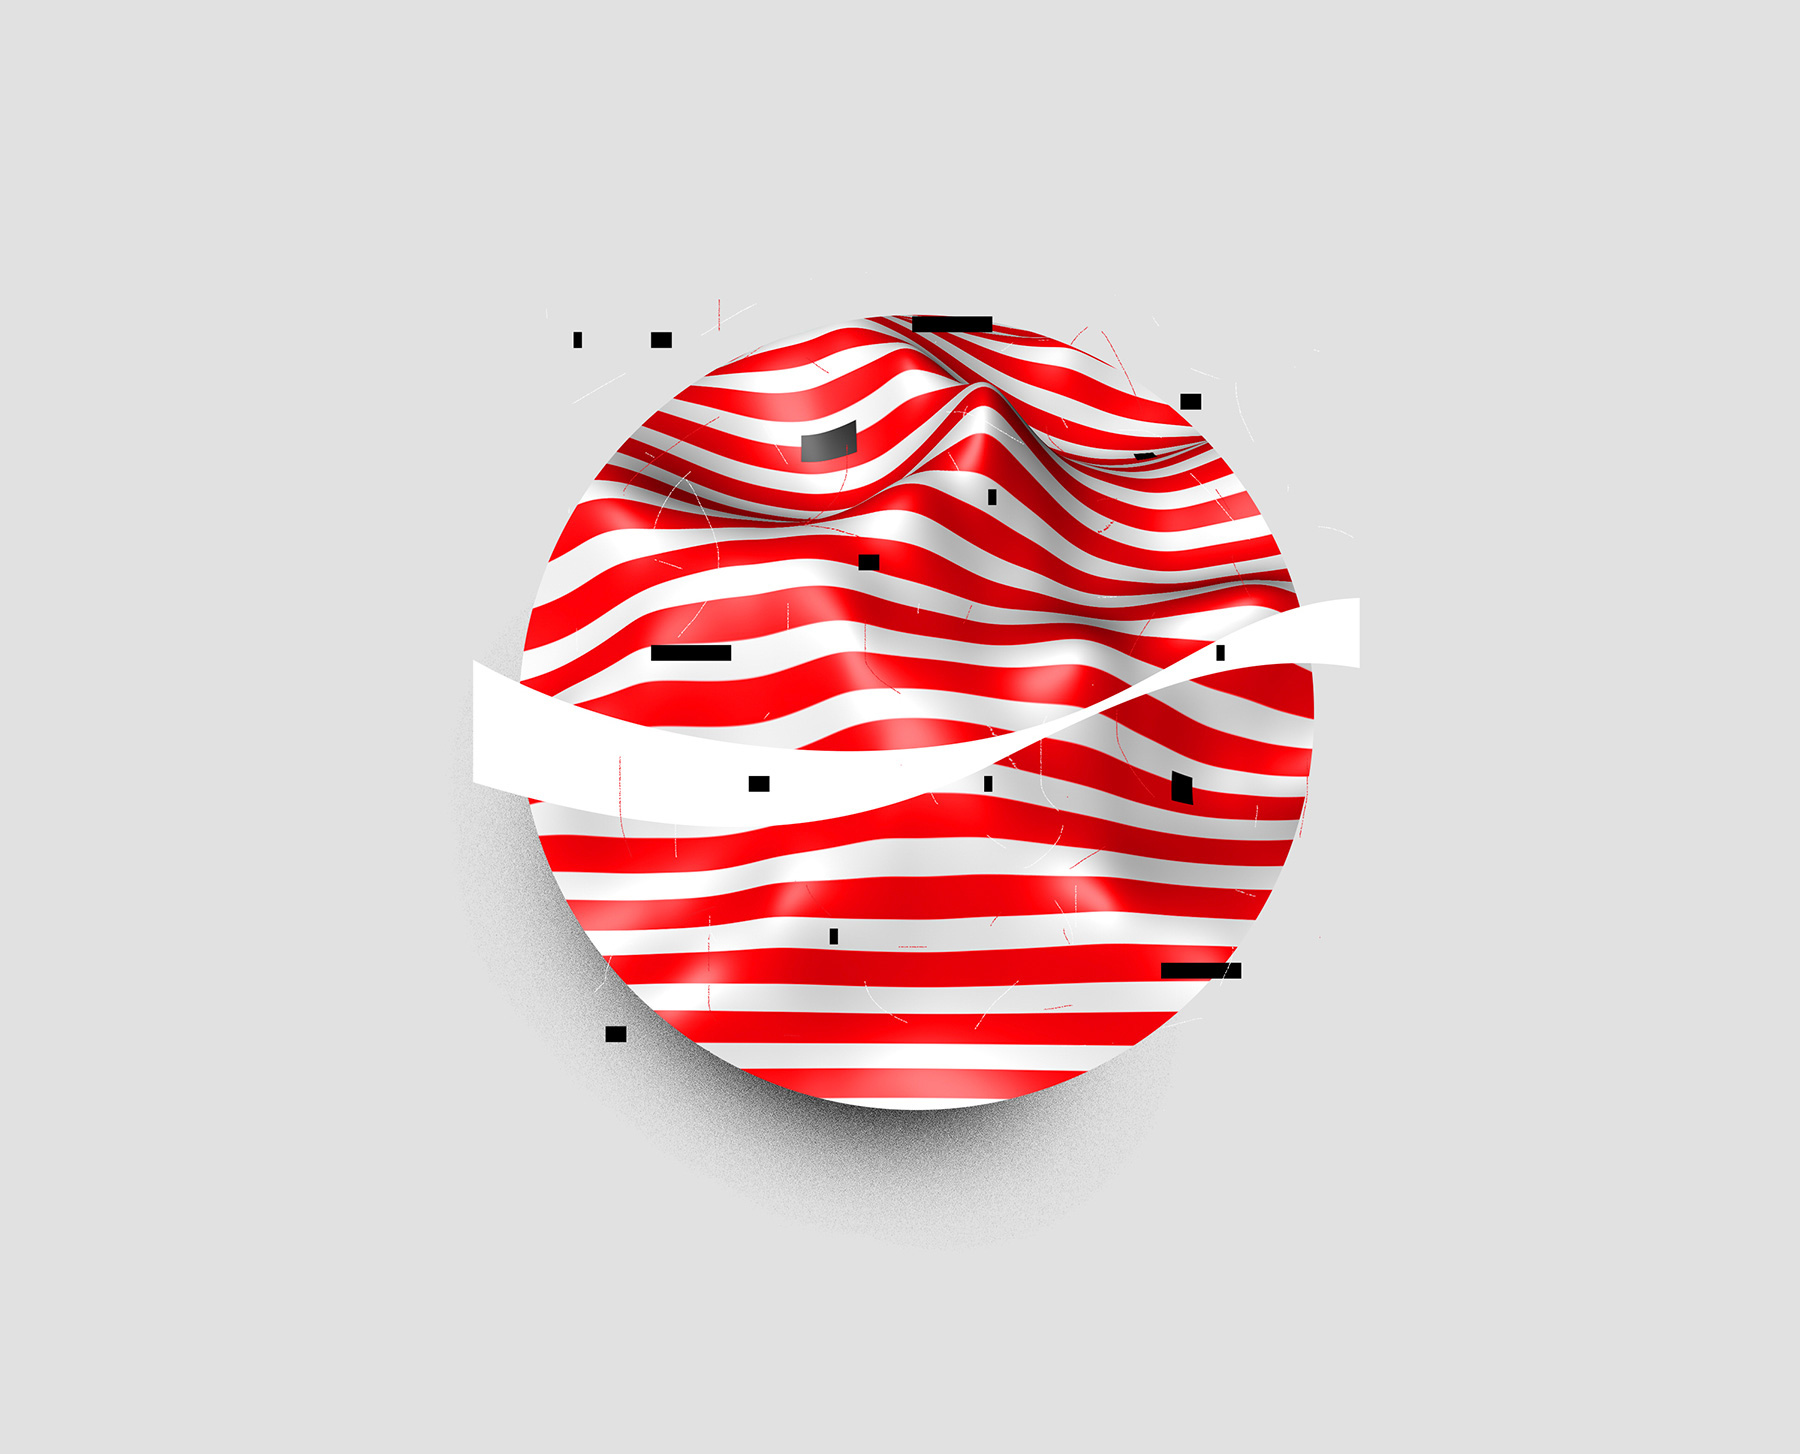 Coca-Cola x Adobe Collaboration by Vasjen Katro